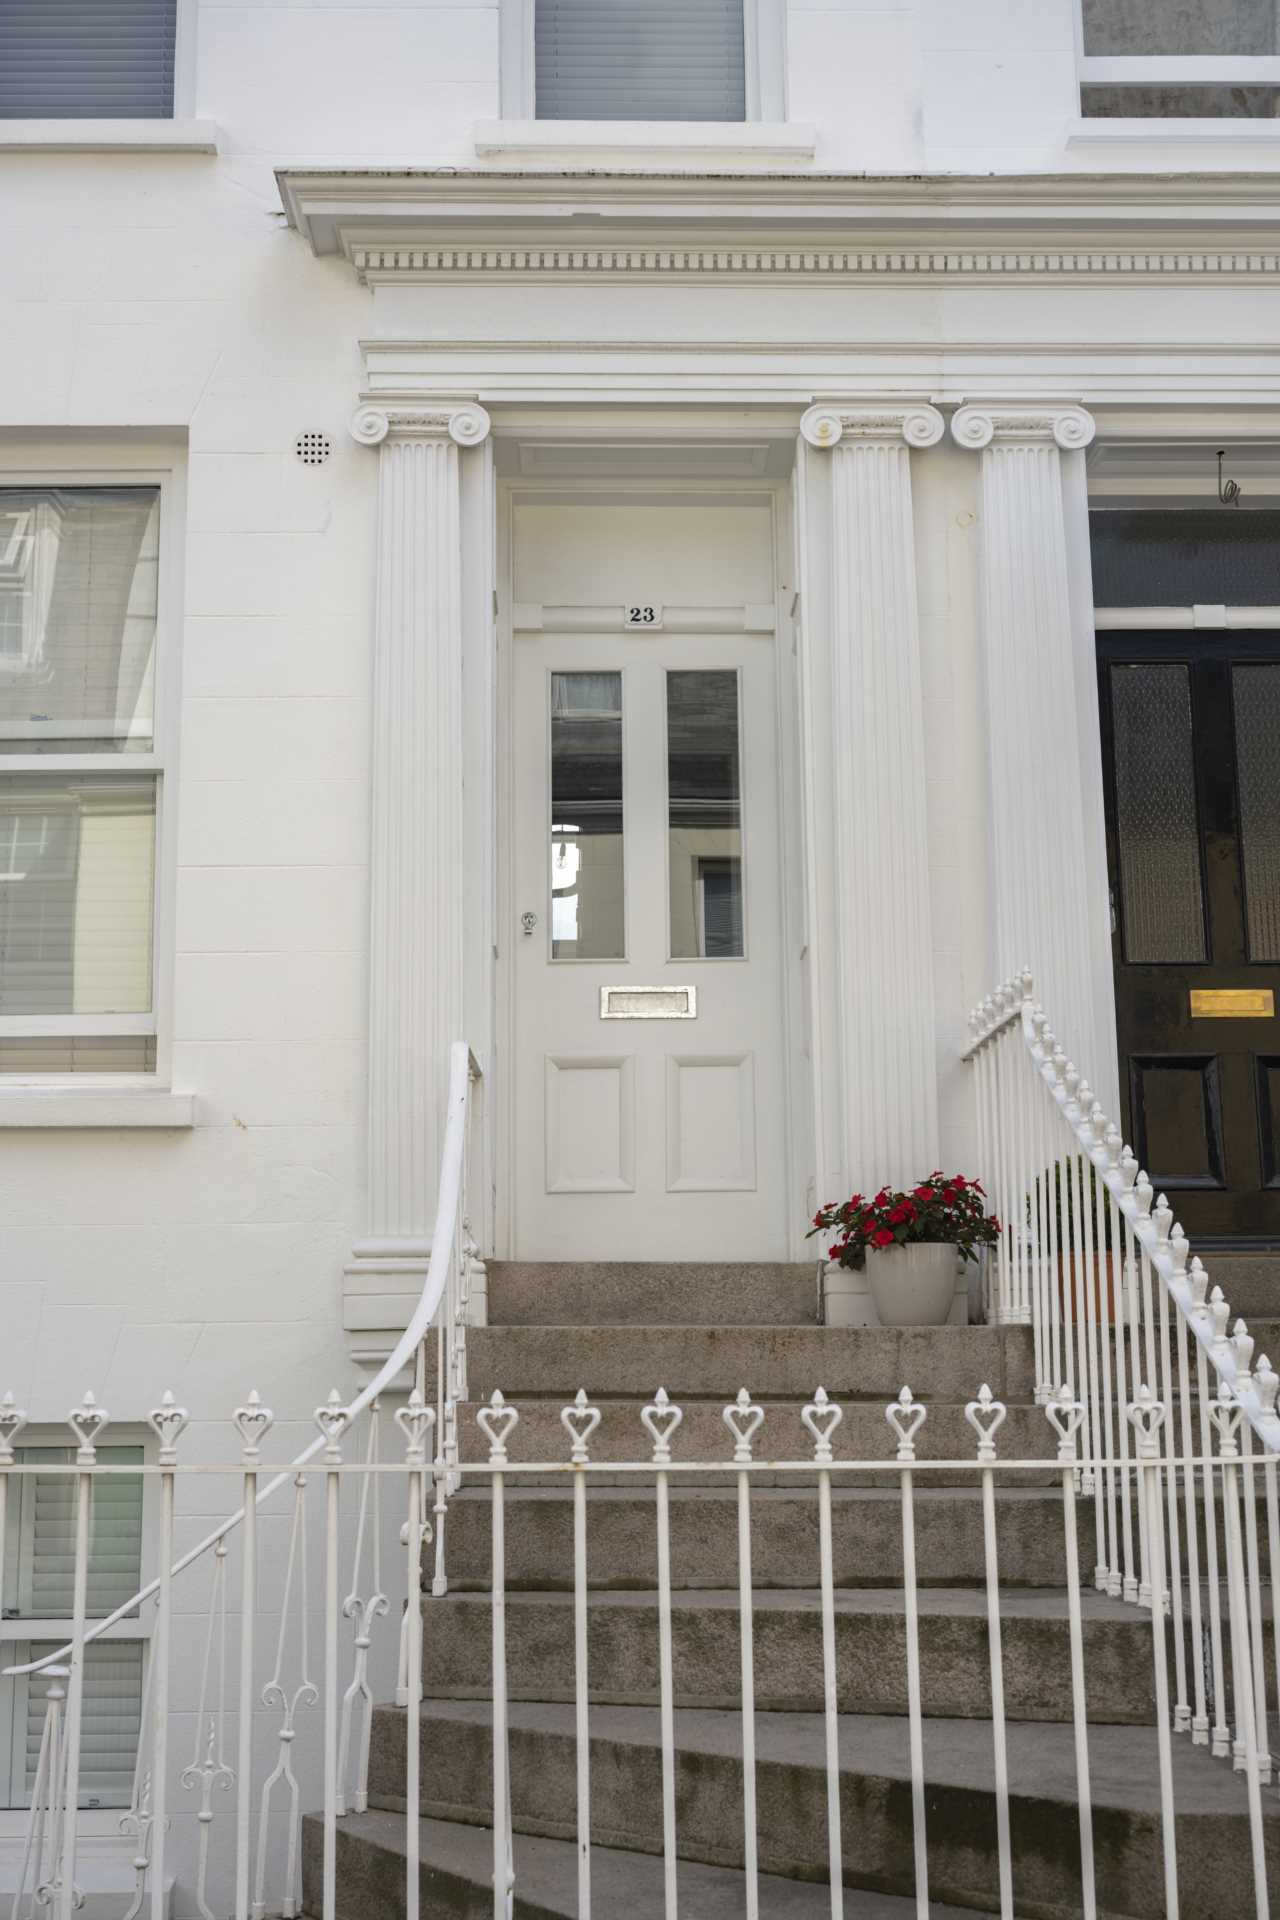 Chevalier Road, St Helier, Image 18